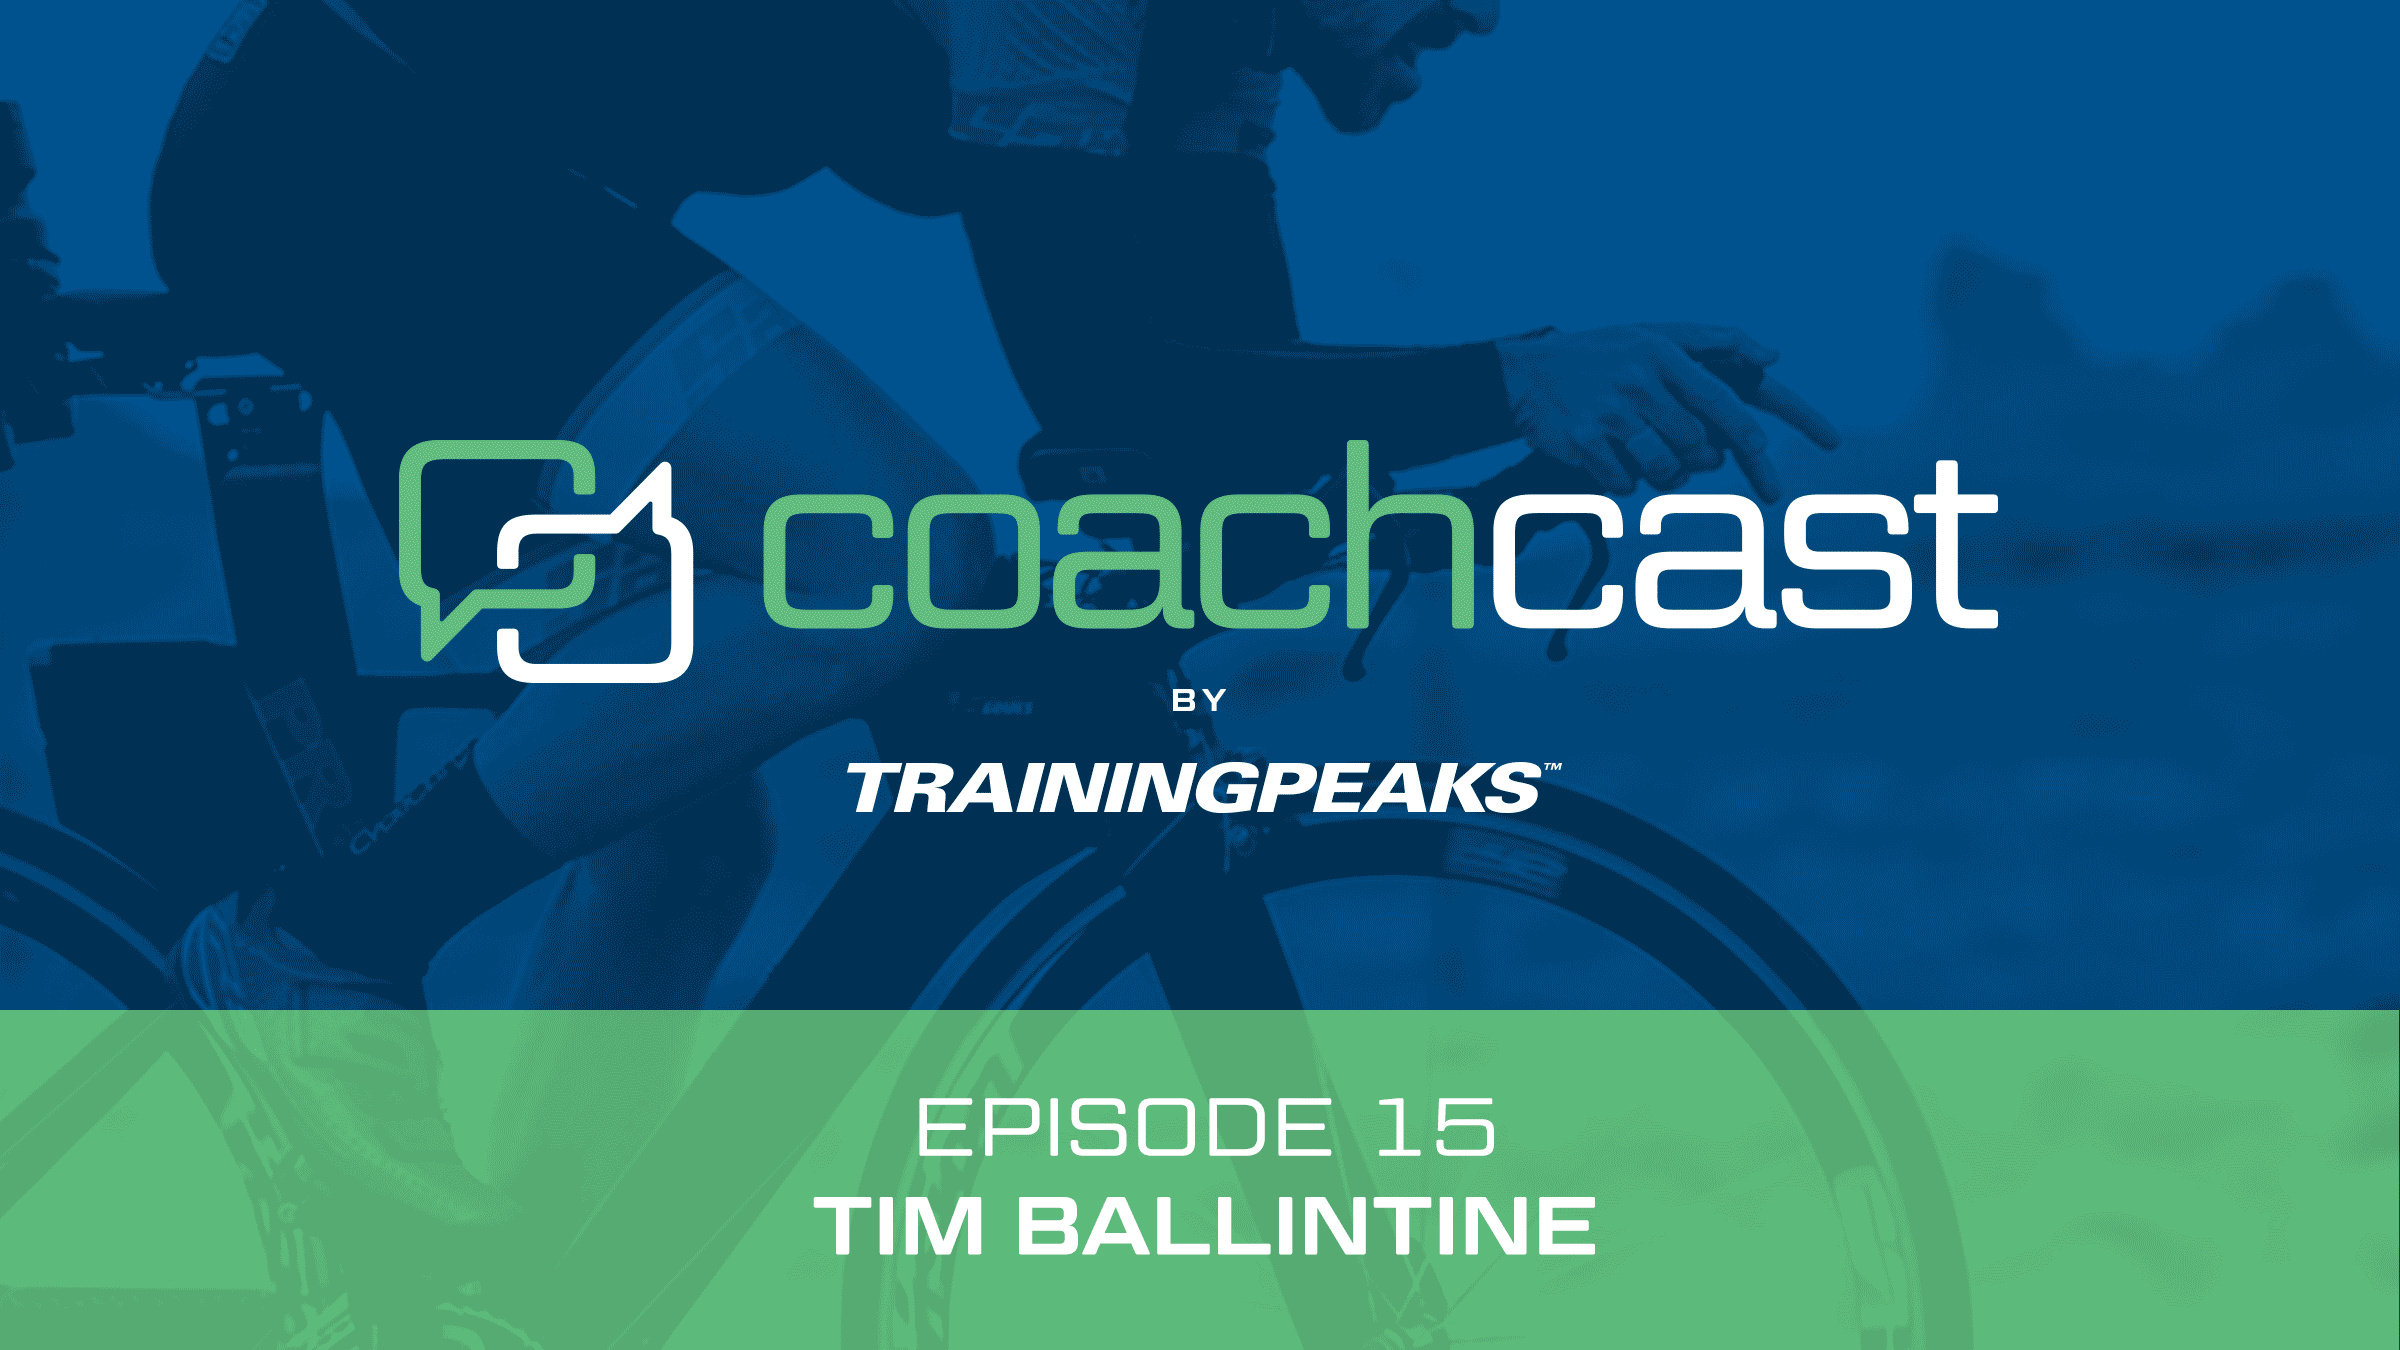 CoachCast: Efficient Coaching with Tim Ballintine